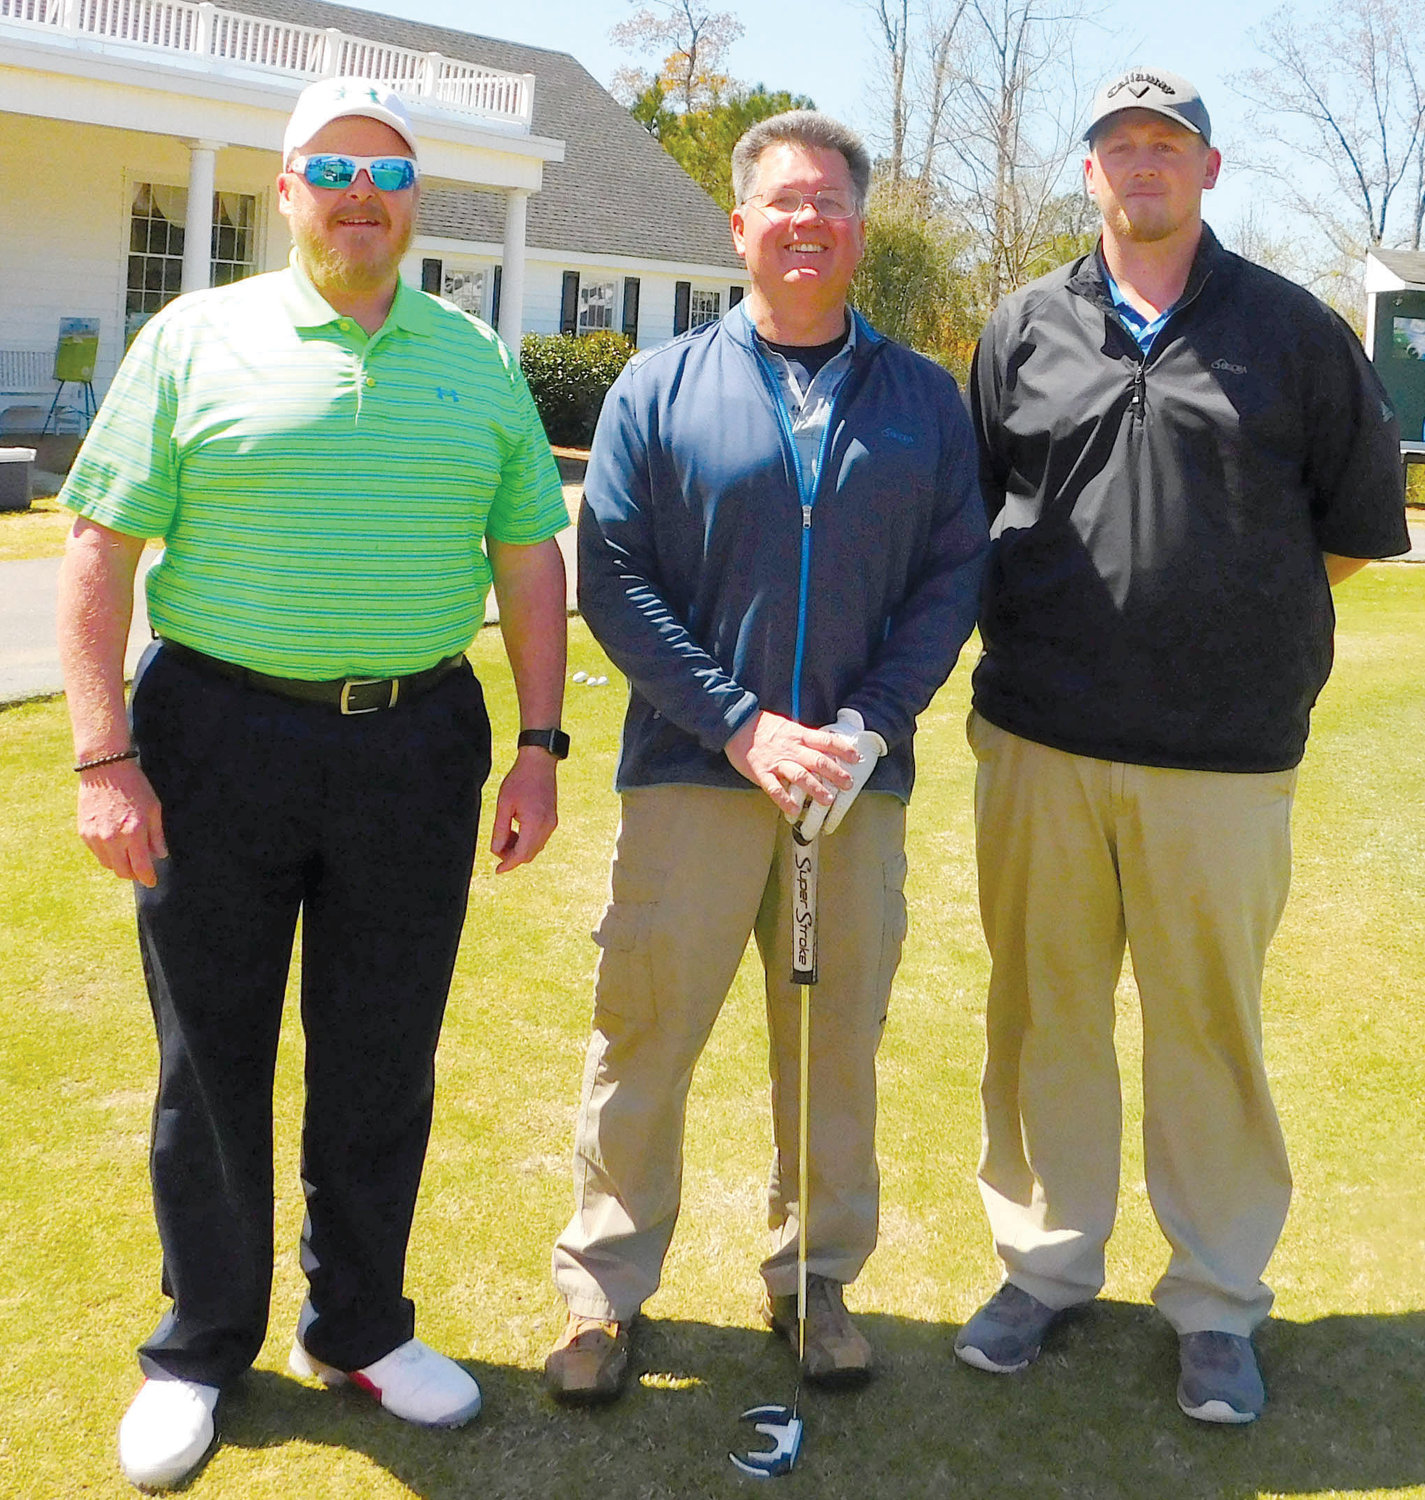 Members of the first flight third-place team in the sixth Central Carolina Community College Foundation Harnett Golf Classic were Steven Hamby, Wallace Simmons and Larry Shaver.